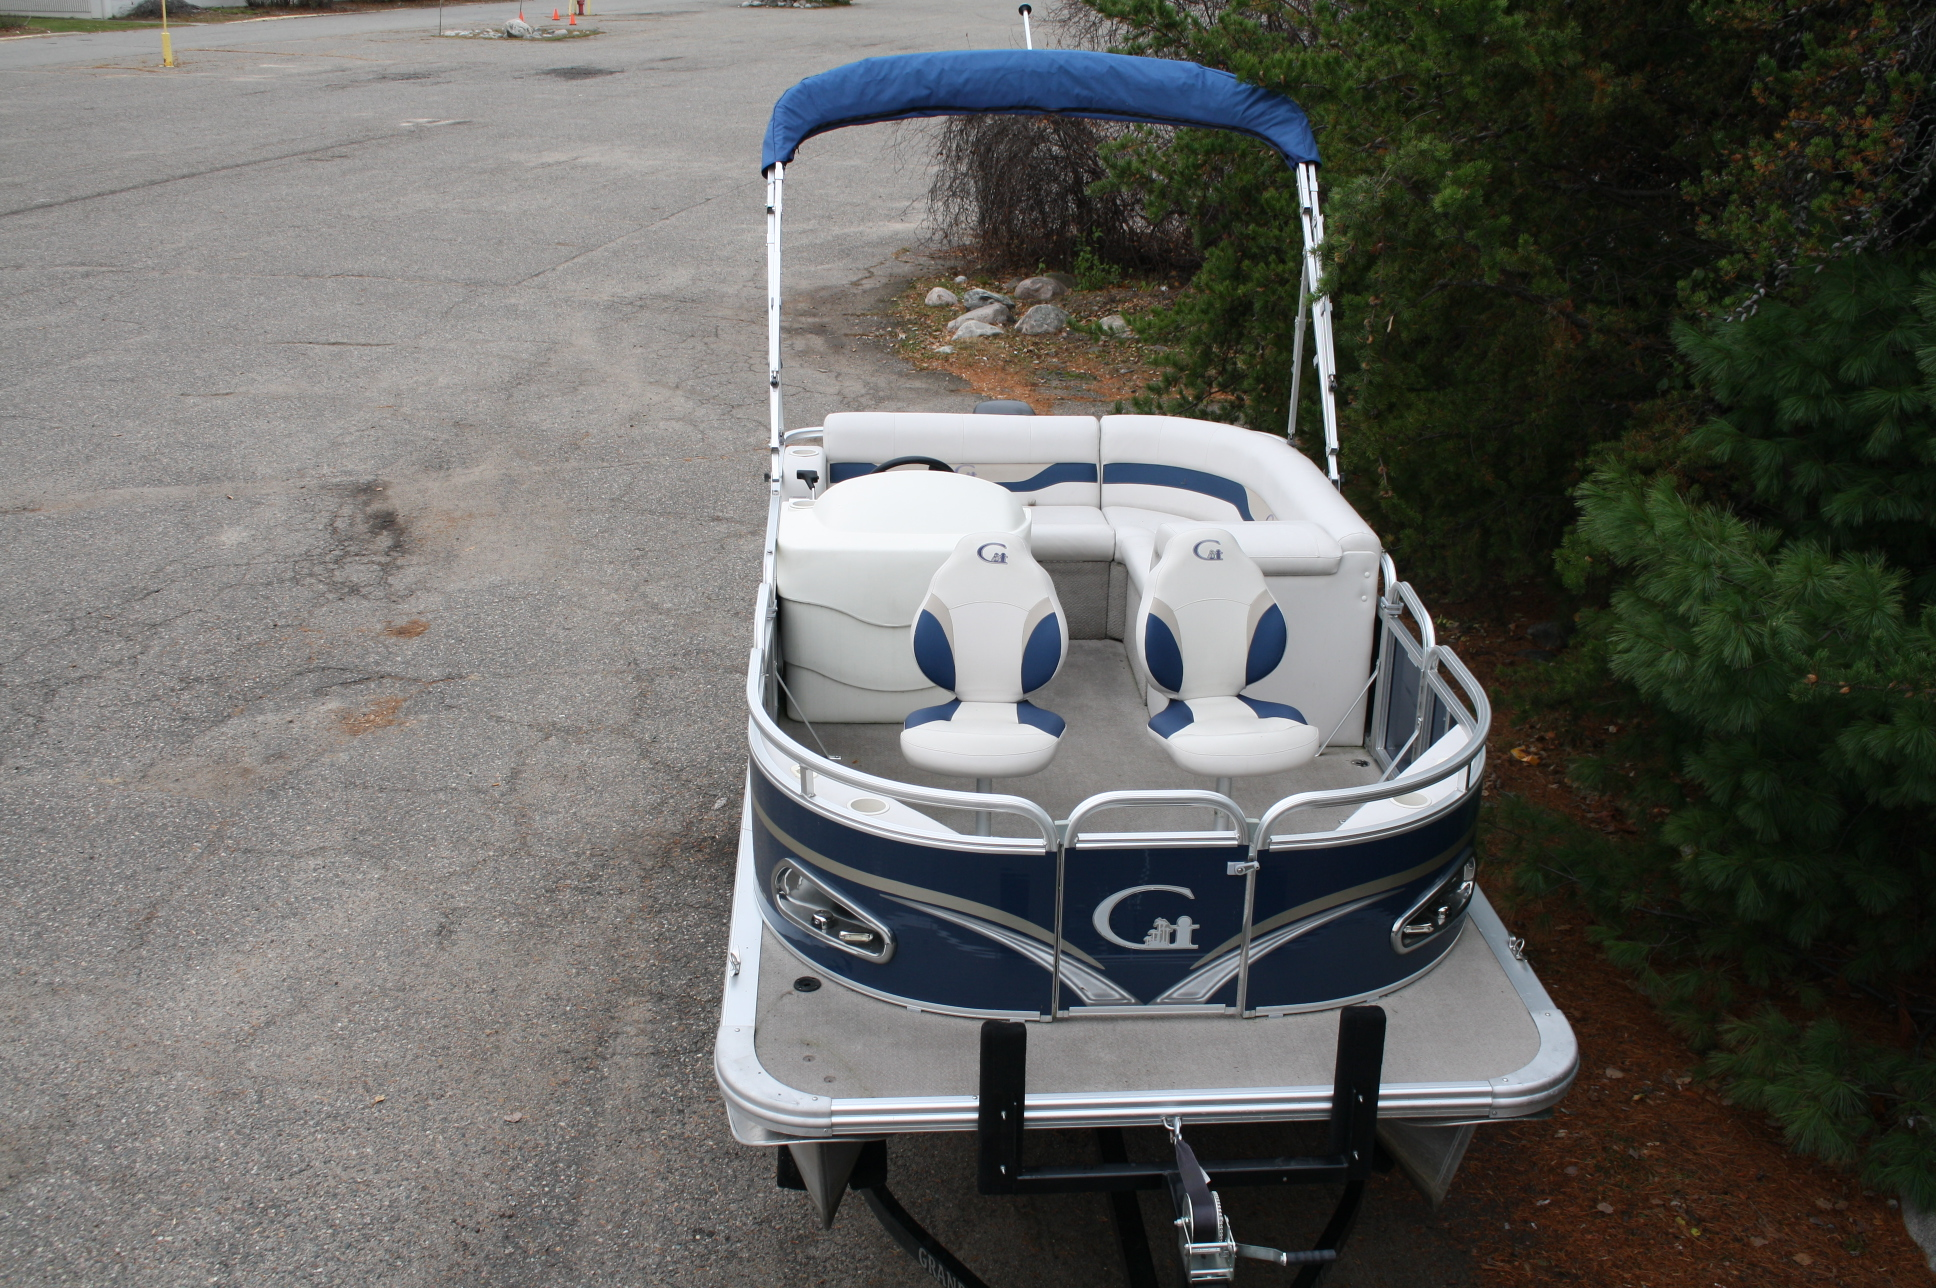 2015 14 Ft Tahoe Fish With 2015 25 Hp Mercury 4 Stroke